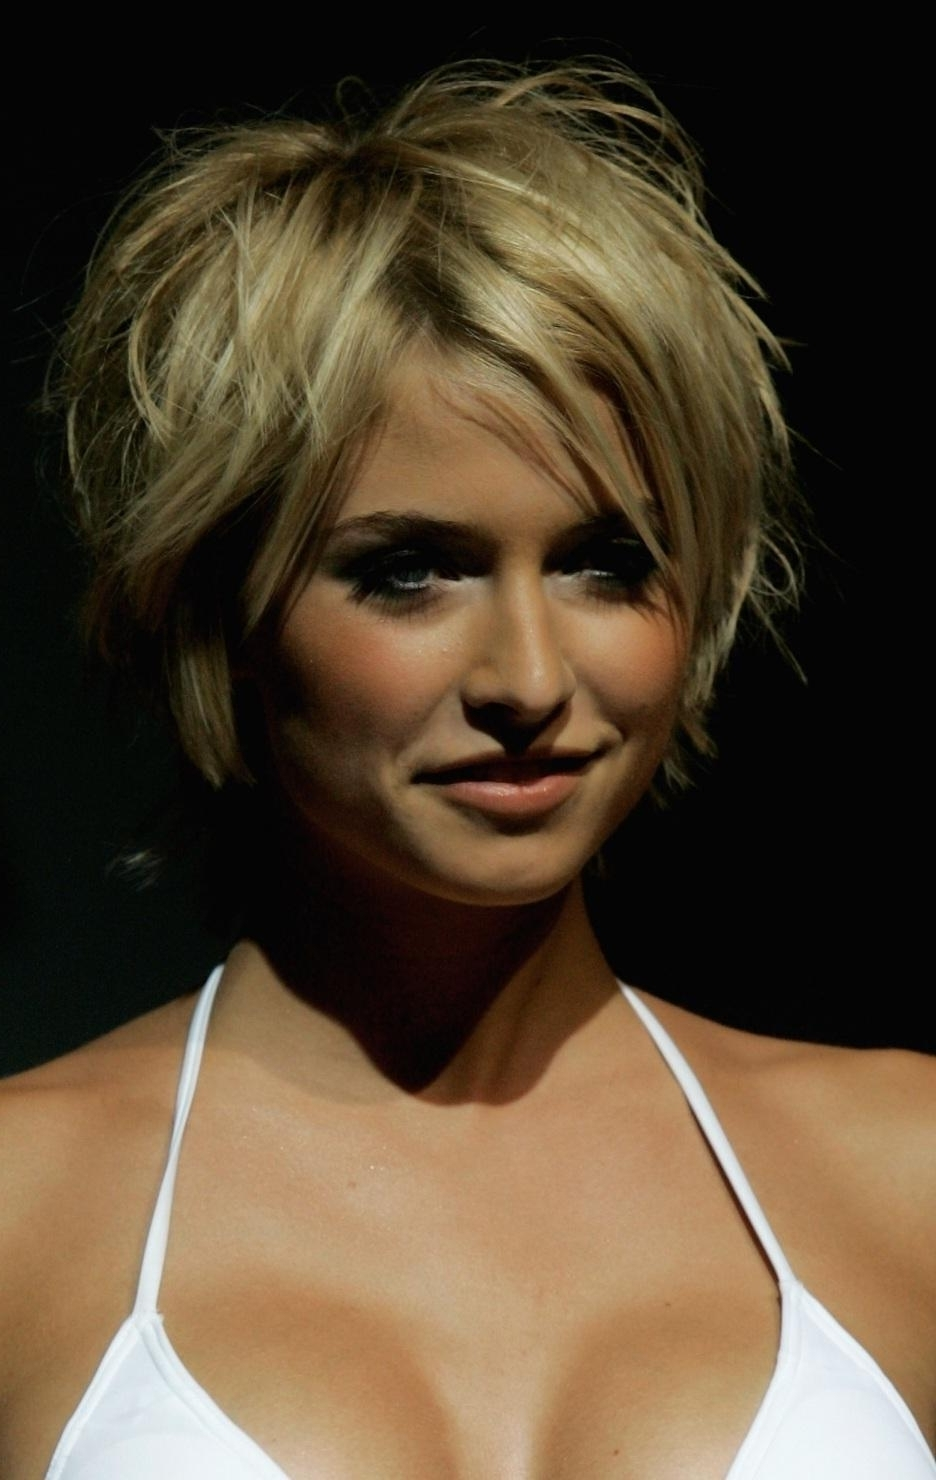 Hot Pixie Hairstyles Best Site Hairstyle And Wedding